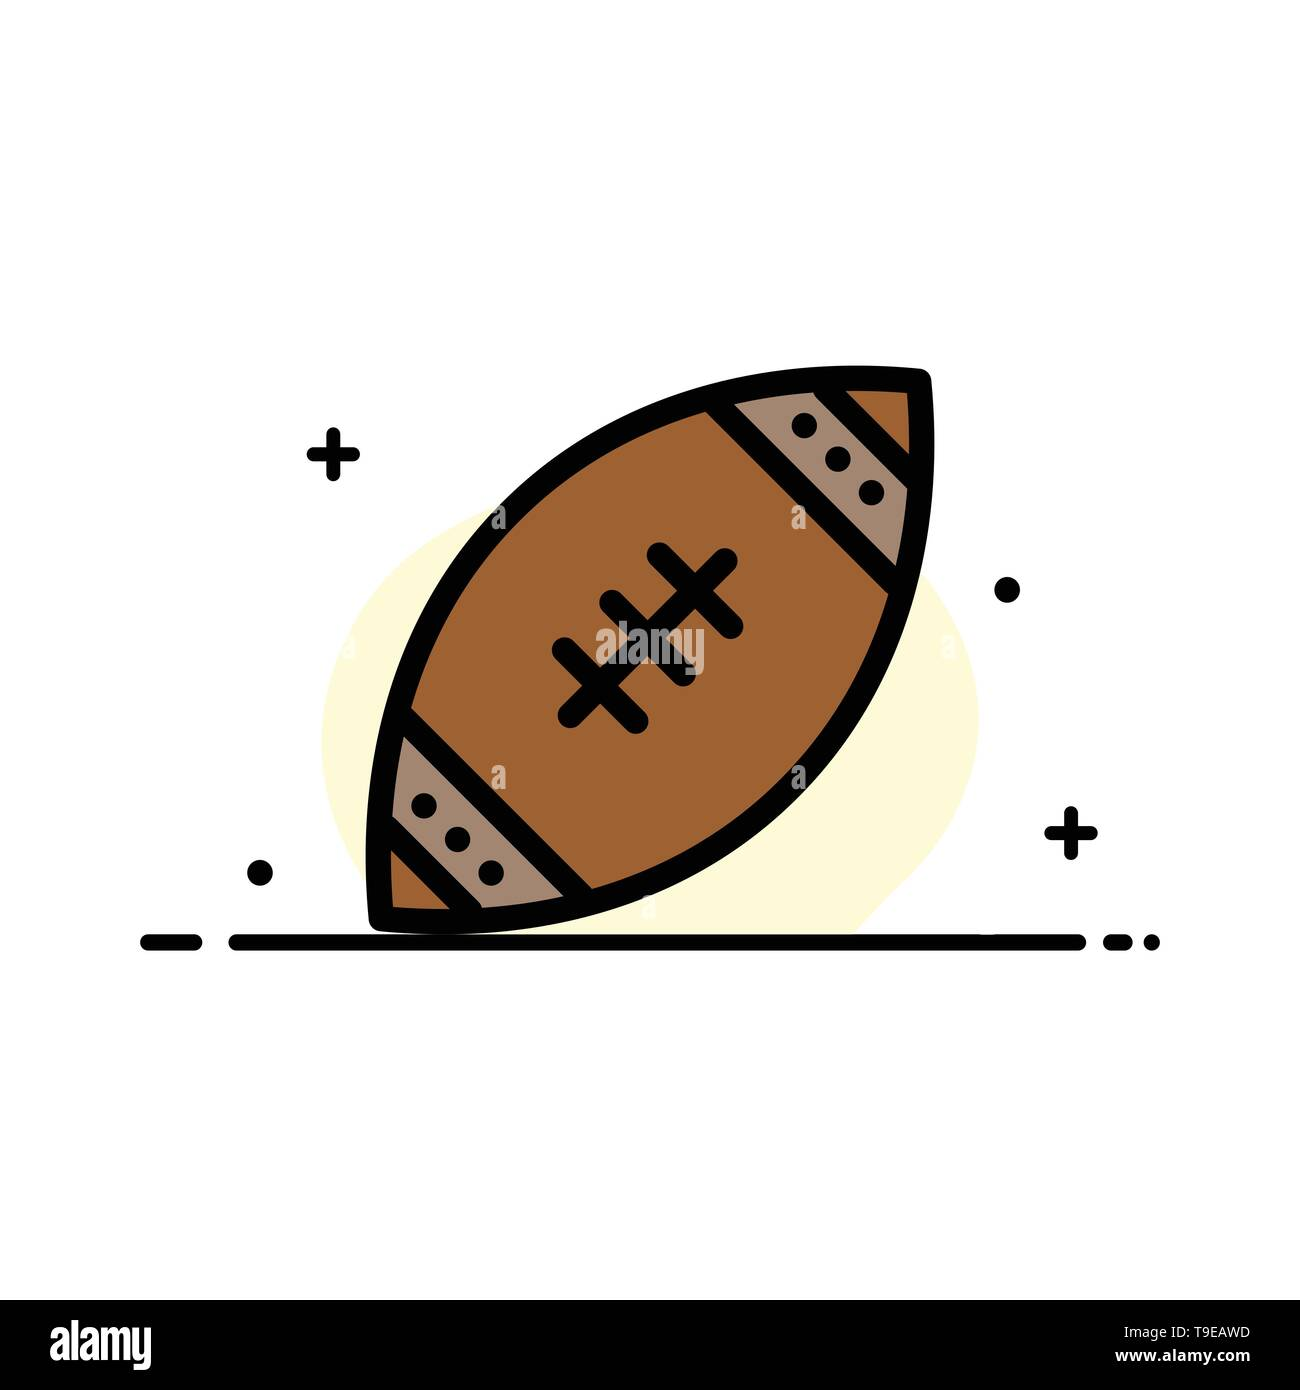 American, Ball, Football, Nfl, Rugby  Business Flat Line Filled Icon Vector Banner Template - Stock Image